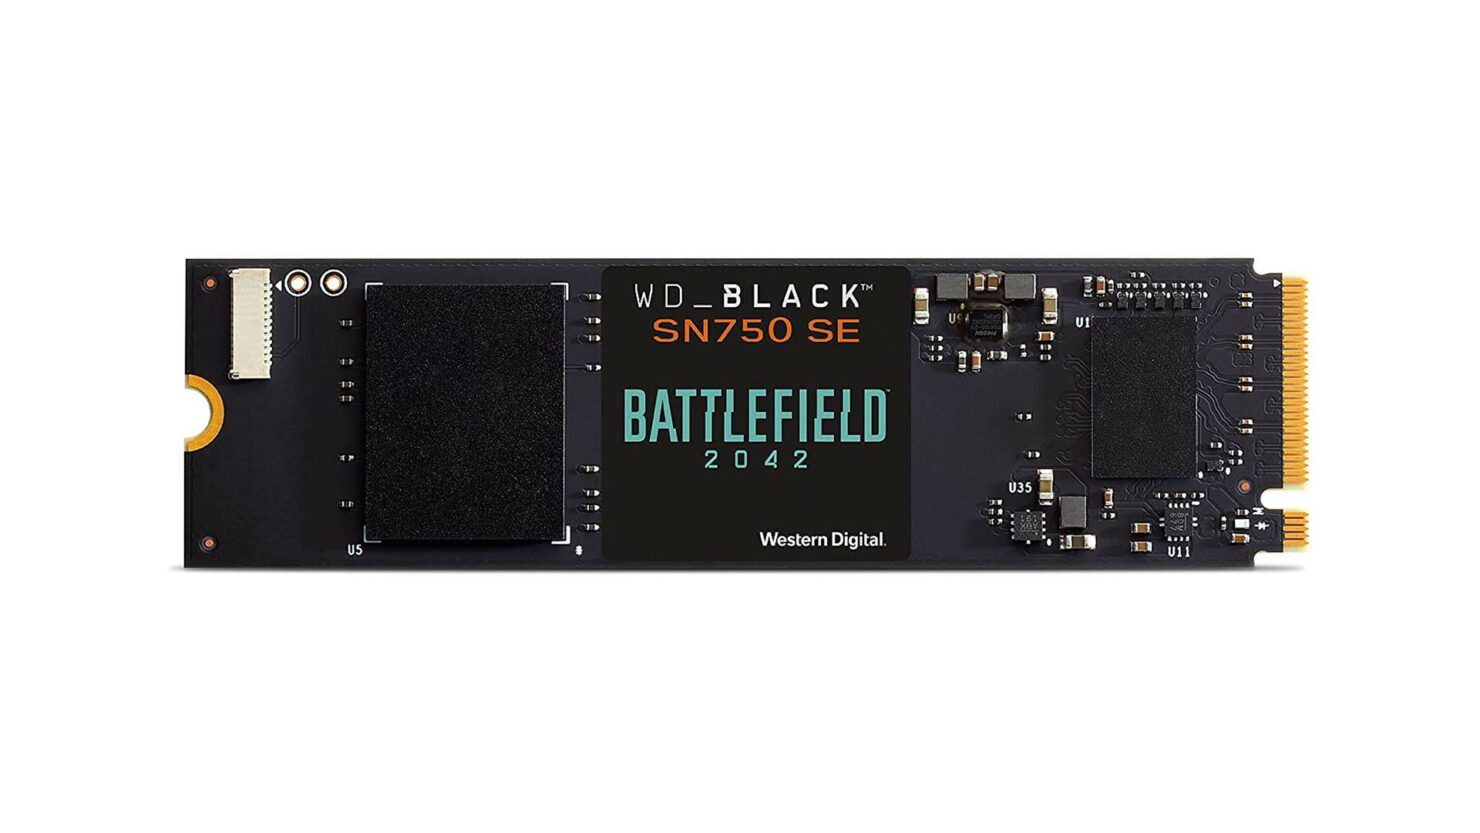 WD_BLACK SN 750 SE NVMe 1TB SSD Gives You a Free Copy of Battlefield 2042 [Costs $159.99]